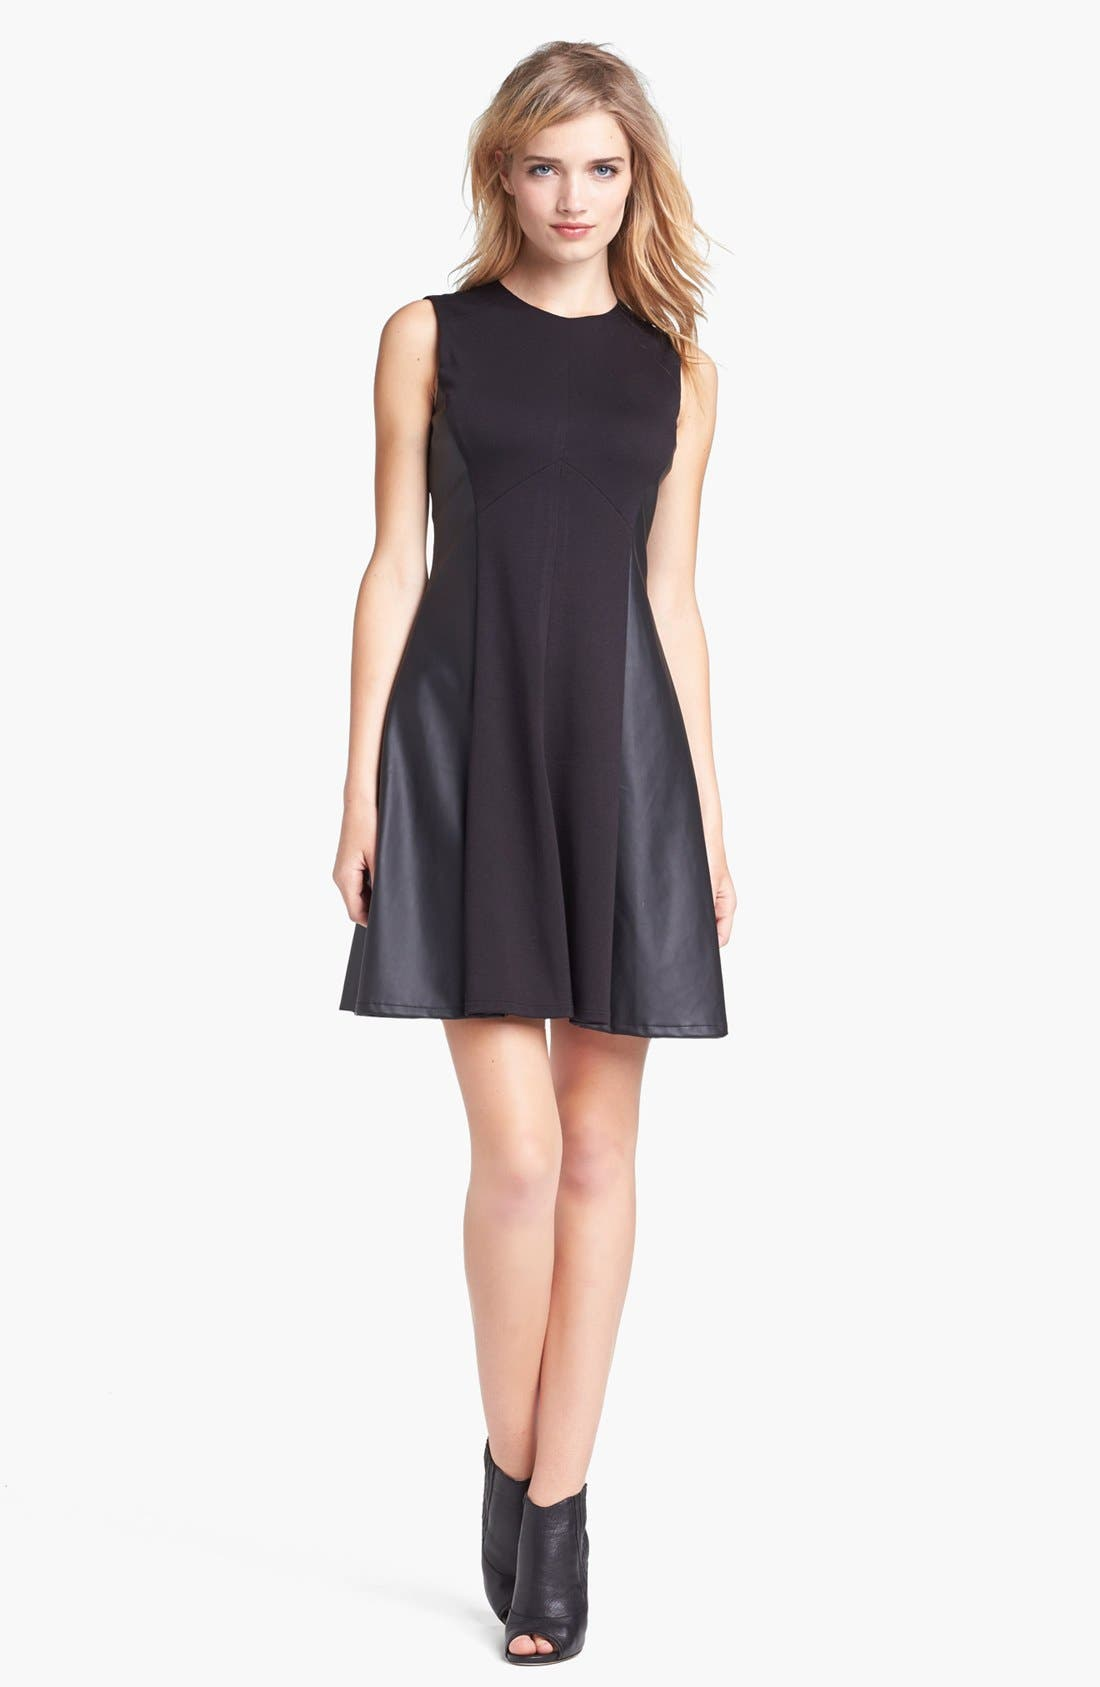 Alternate Image 1 Selected - Vince Camuto Faux Leather Panel Fit & Flare Dress